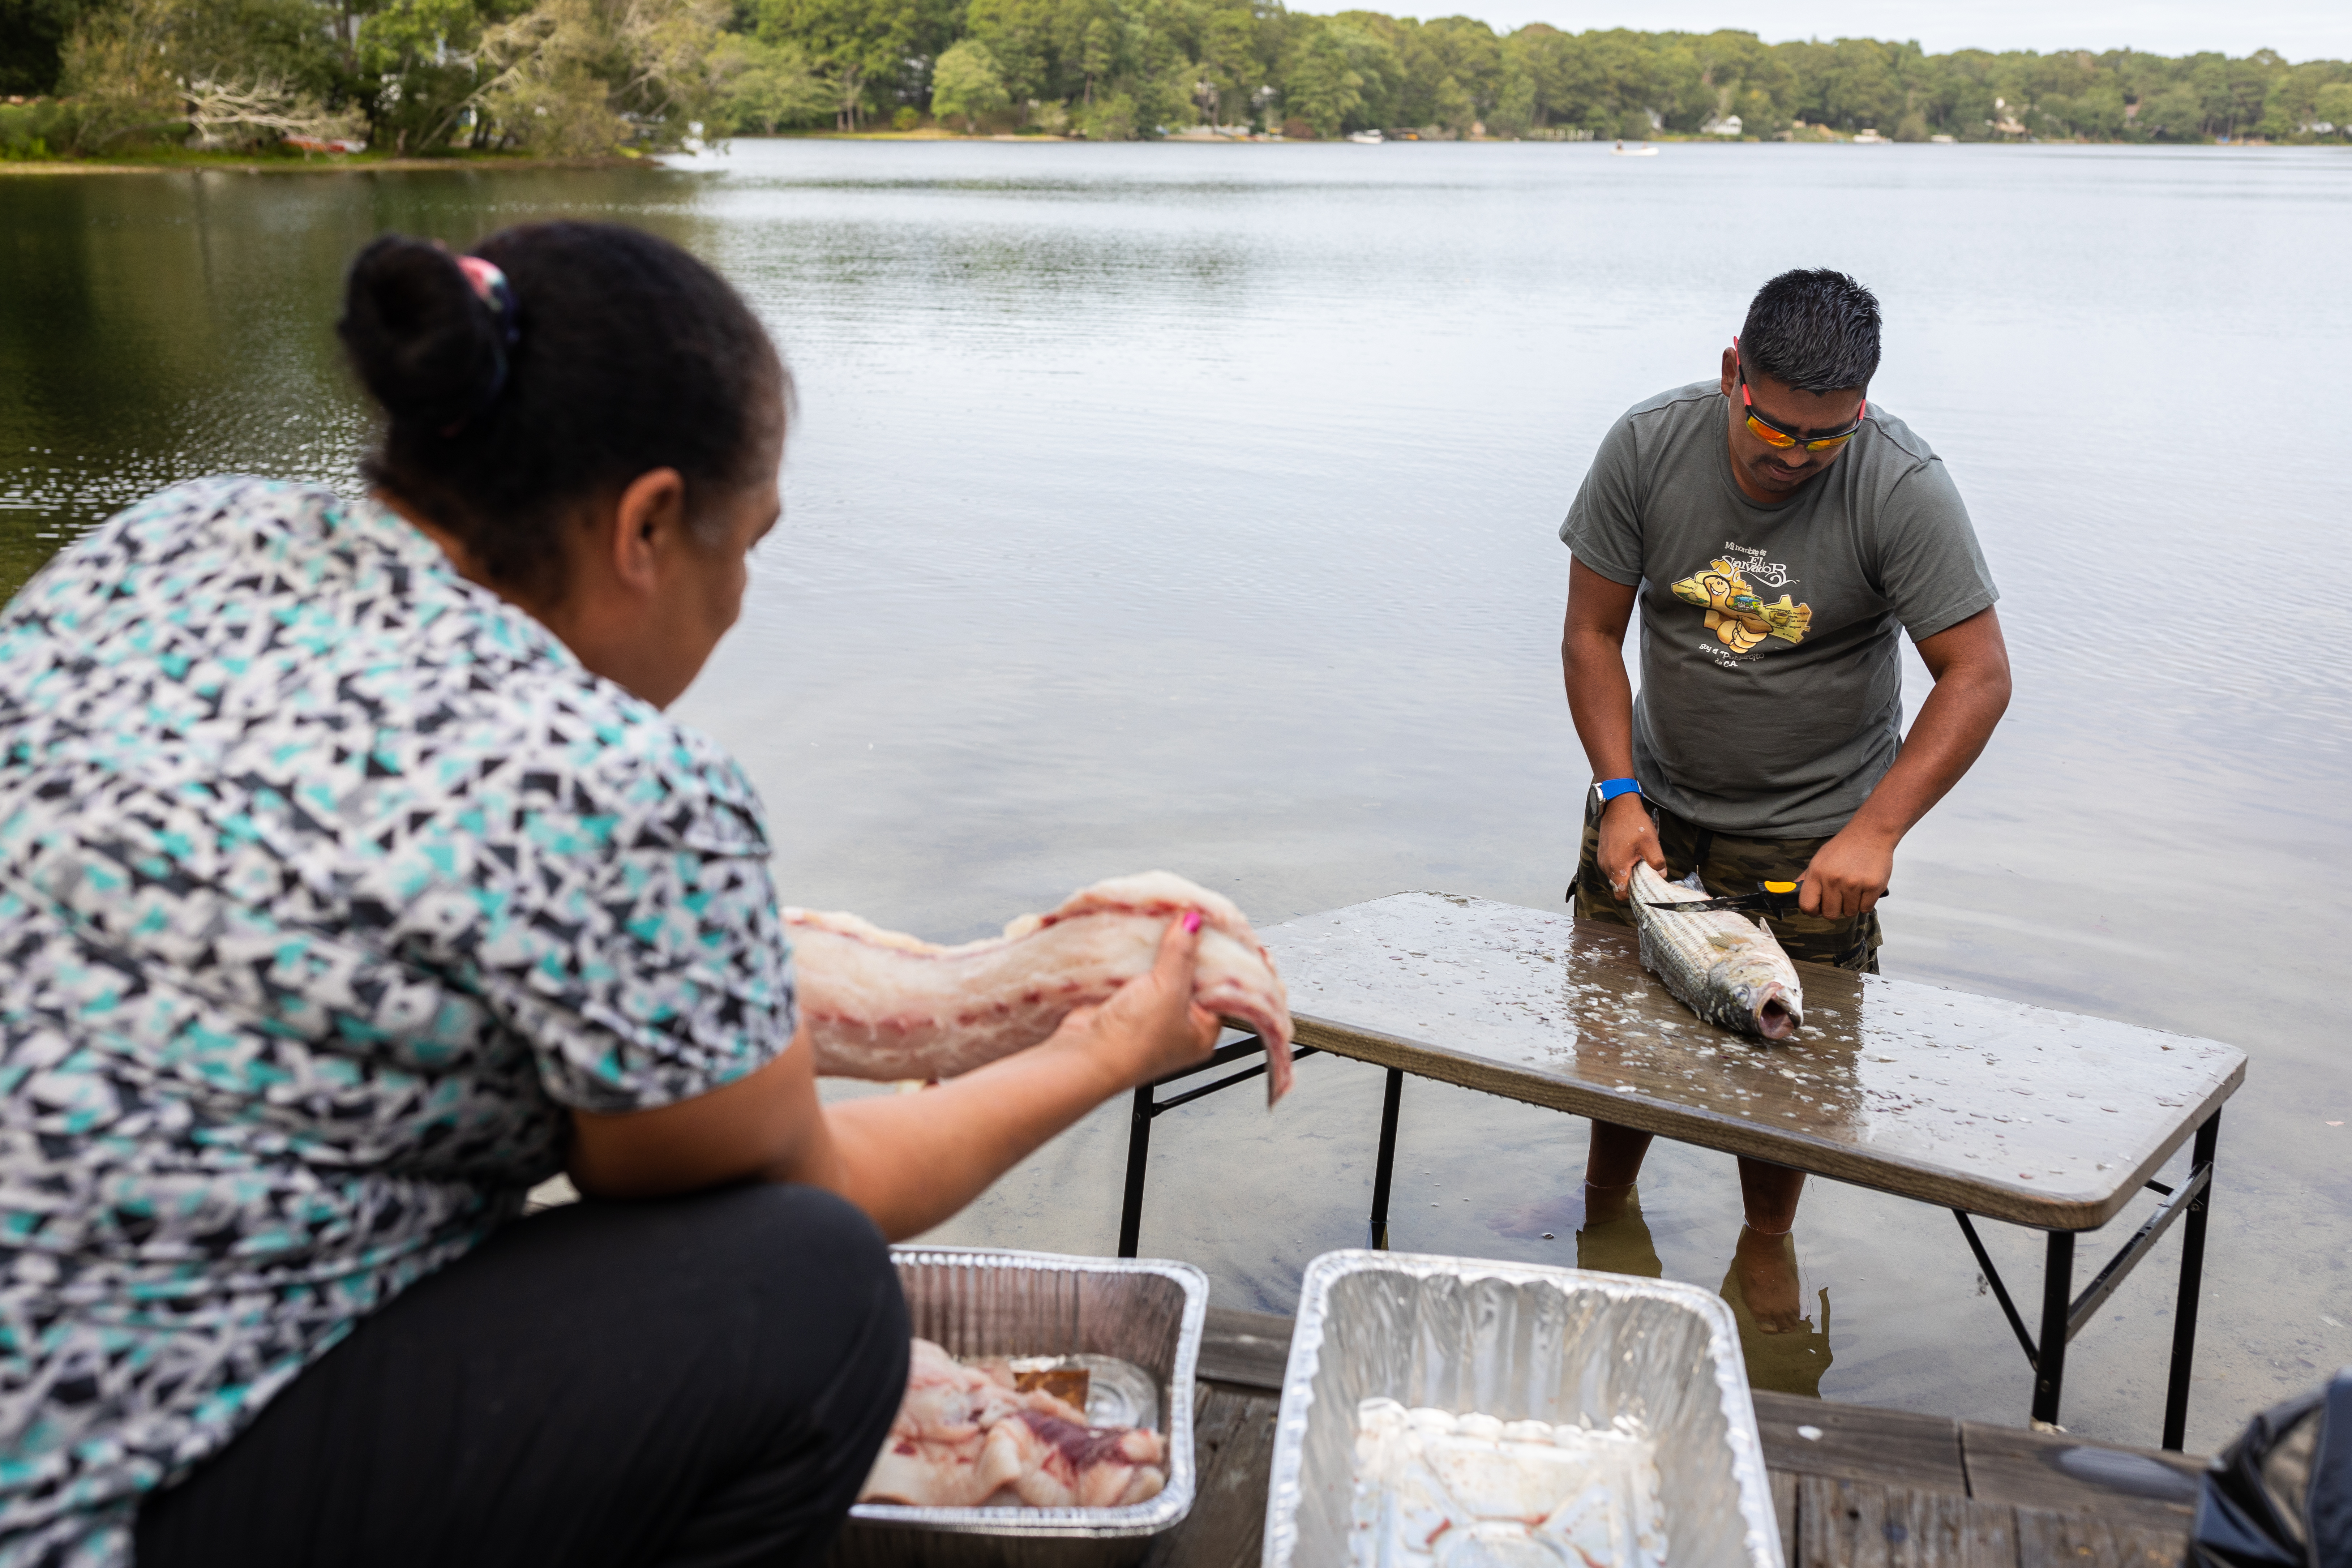 Darwin González descales a freshly caught striped bass as Delscena Hicks, a member of the Mashpee Wampanoag Tribe, picks up a striped bass filet in Centerville.